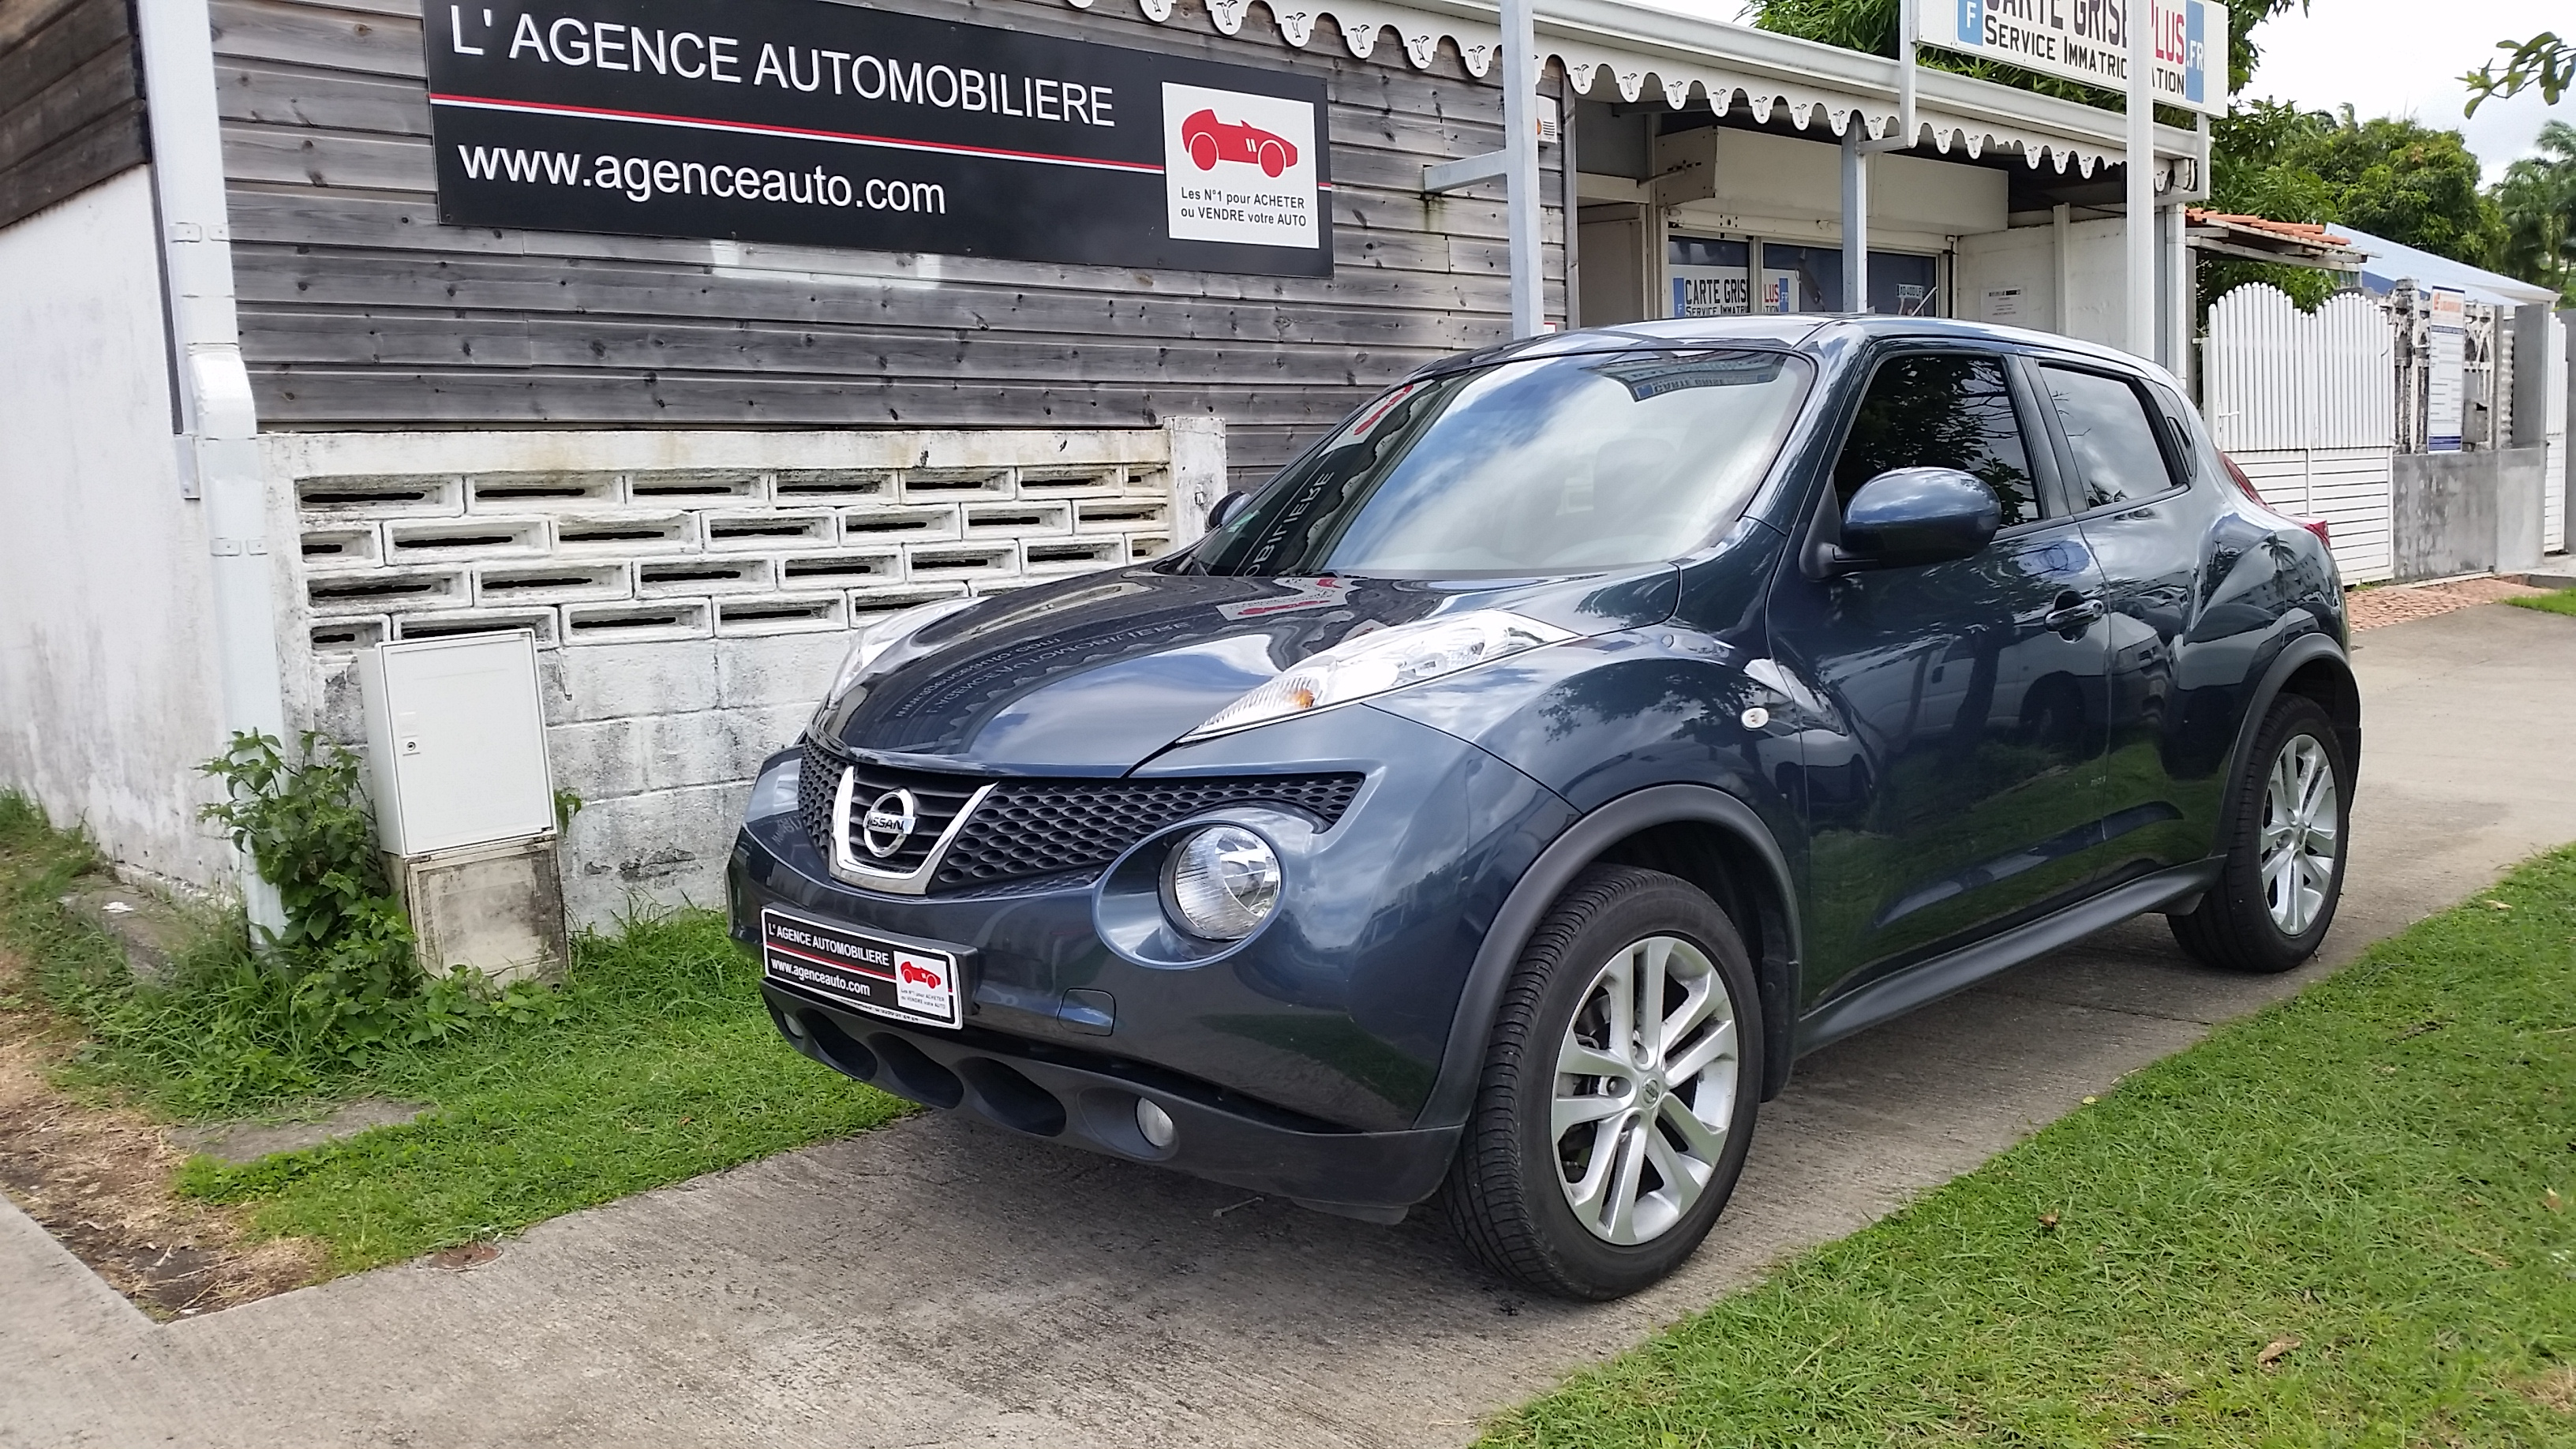 nissan juke 1 6 117ch acenta cvt occasion martinique pas cher voiture occasion martinique 97200. Black Bedroom Furniture Sets. Home Design Ideas